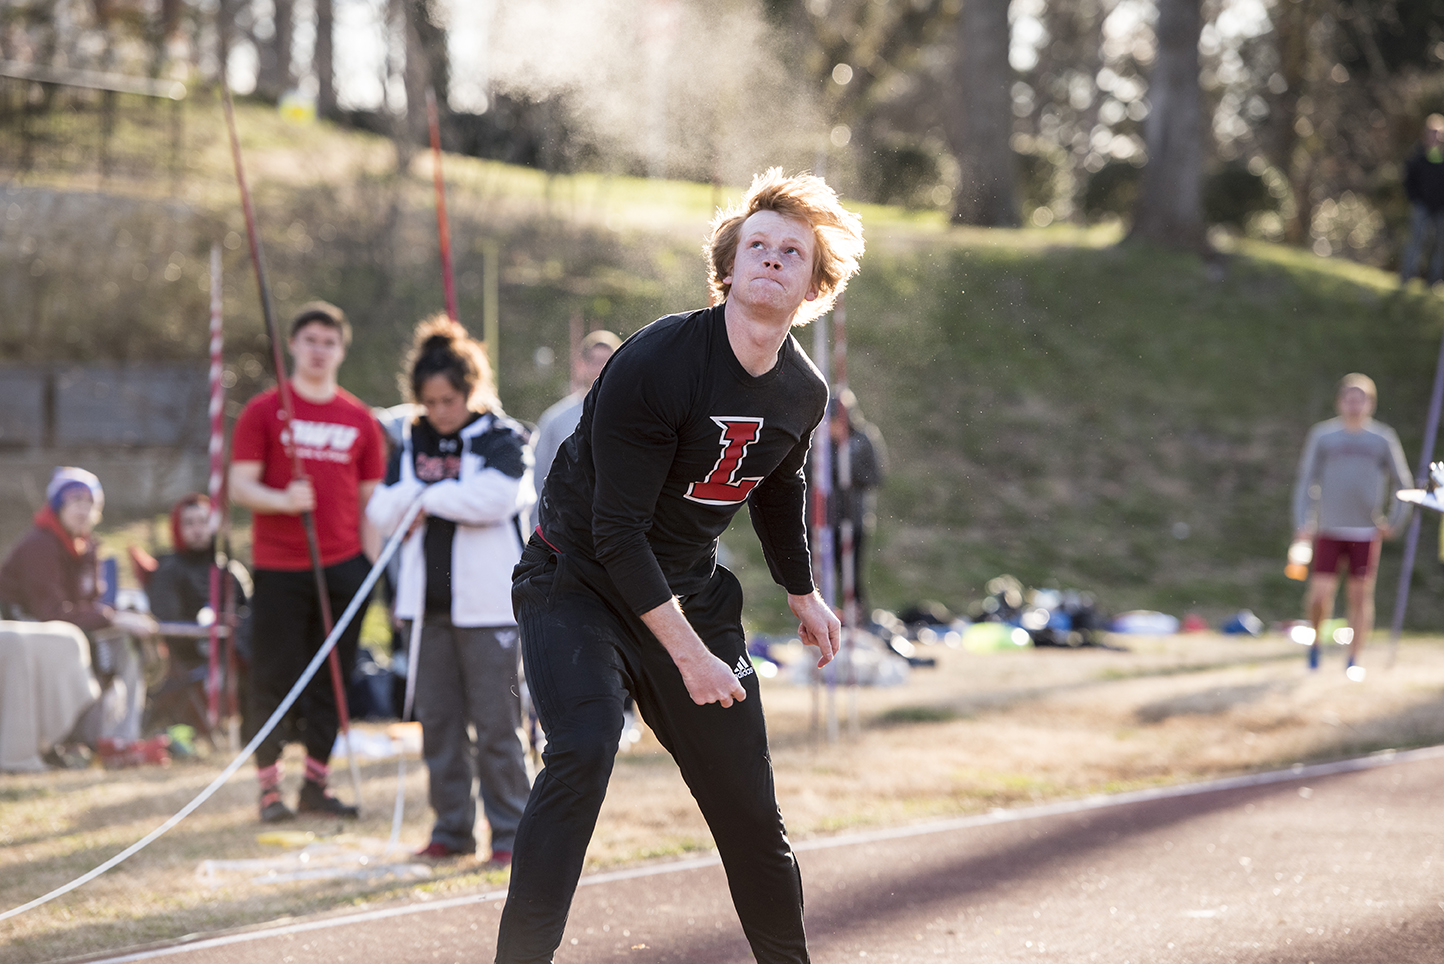 Dalton Hoppe watches a javelin fly.